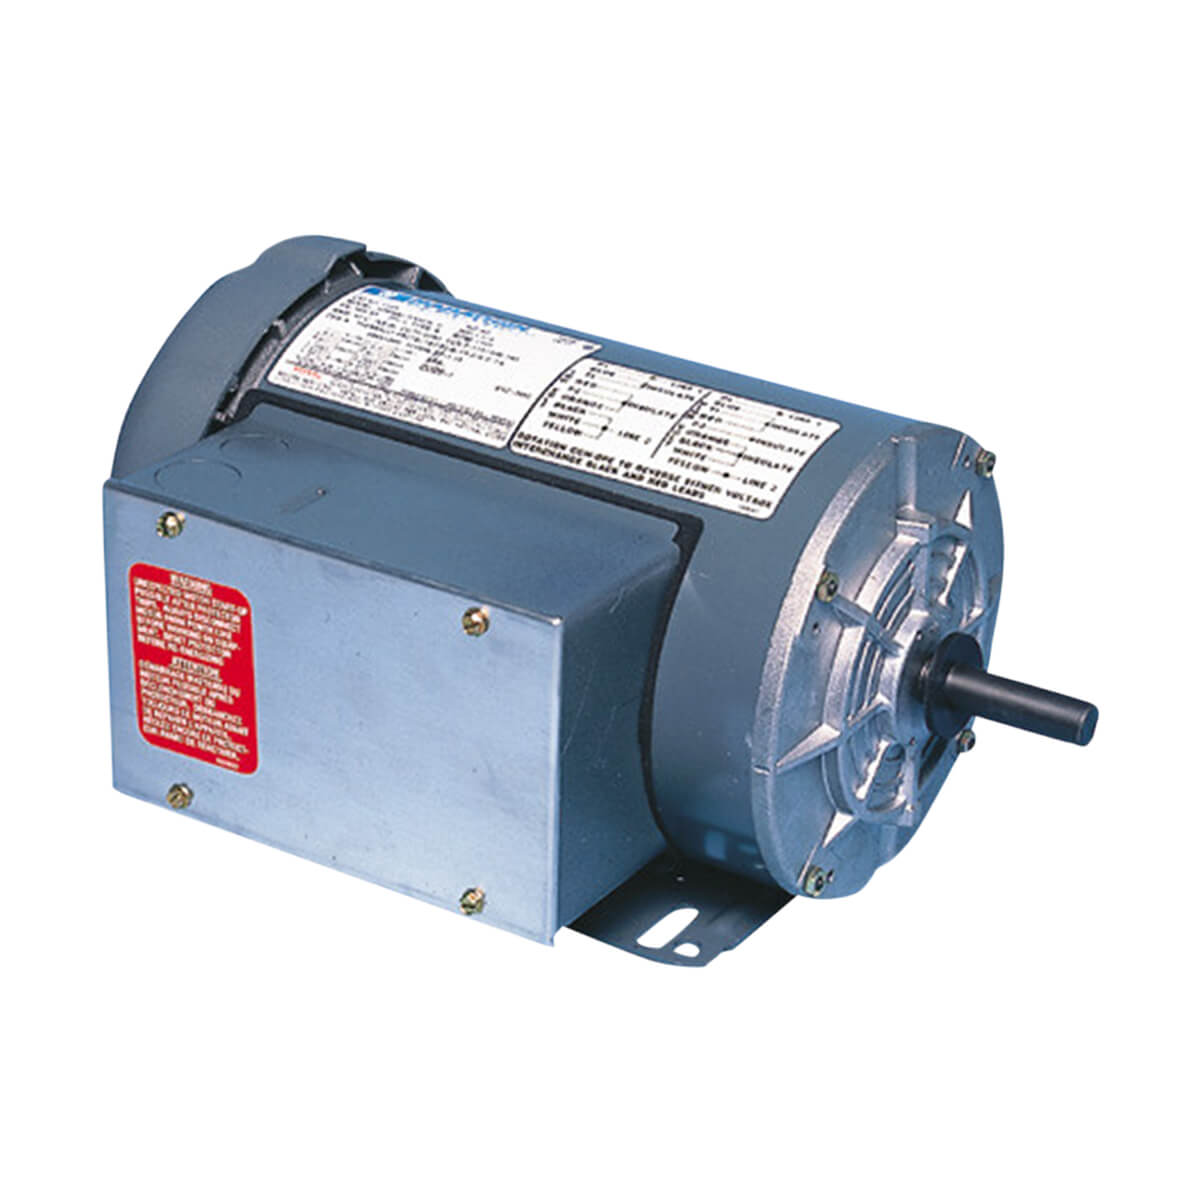 Farm Duty Electric Motor - F105 / 1.5HP